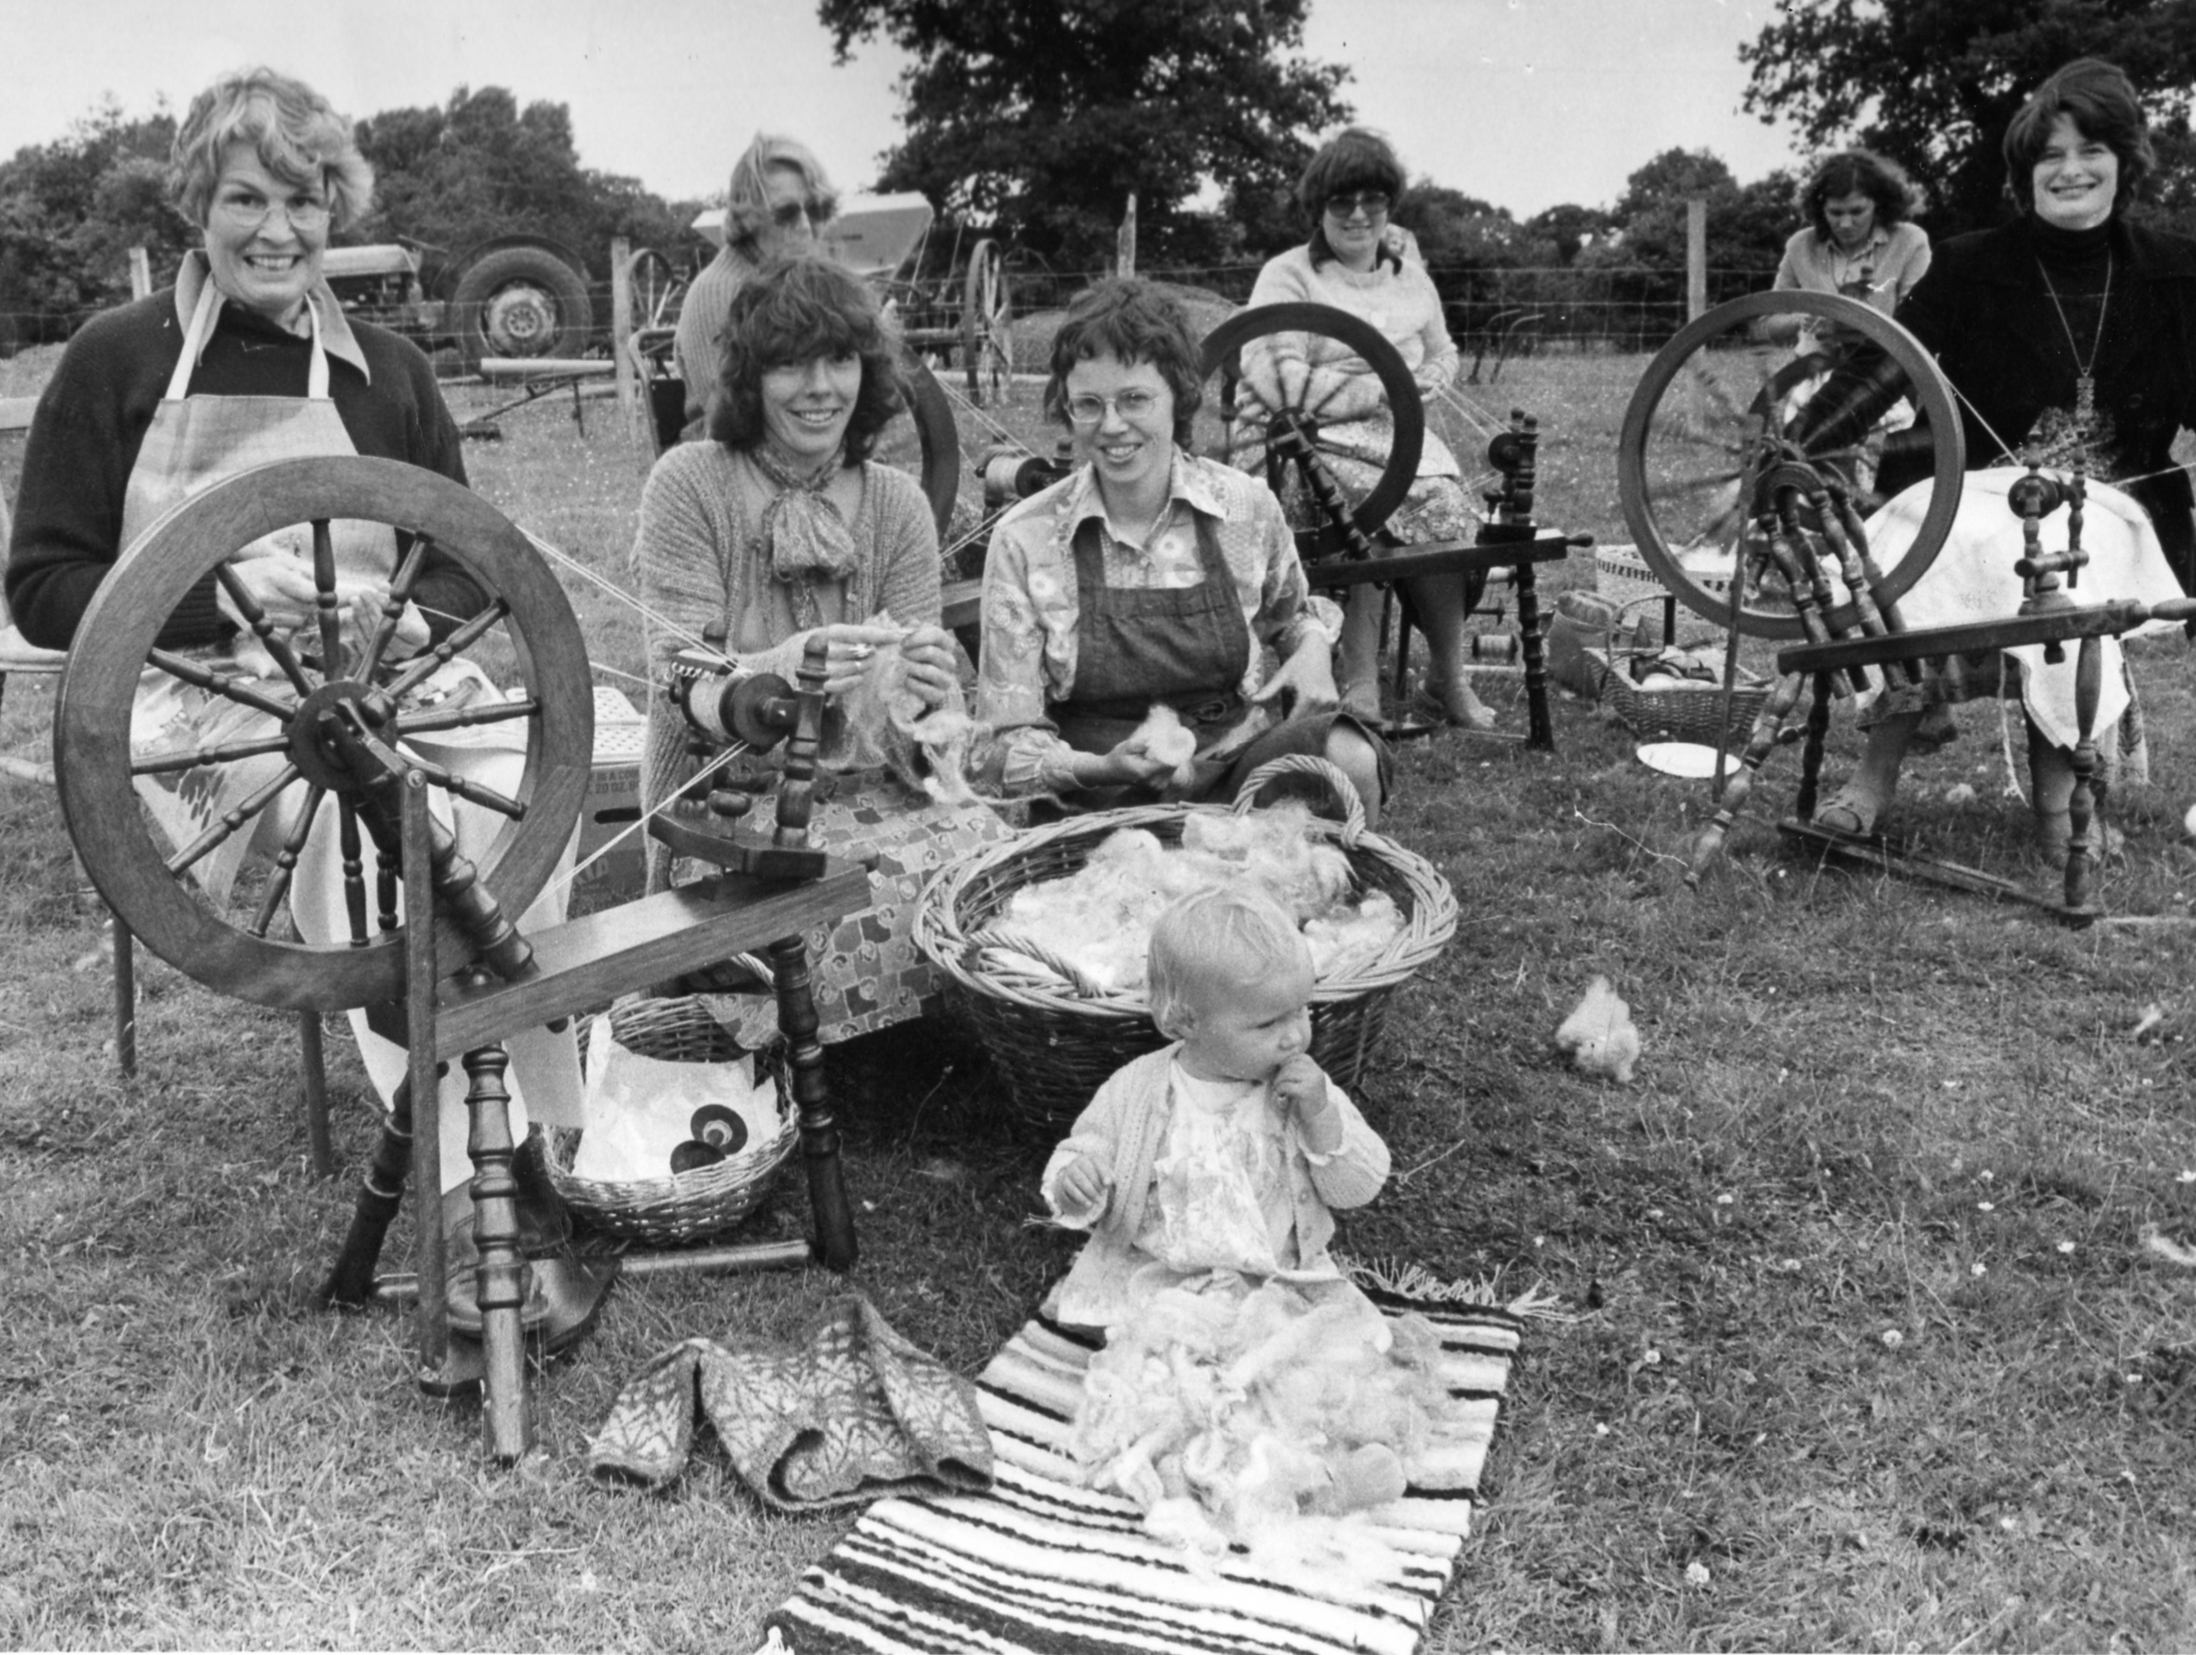 1979 - Attending her first spinning class run by her mother (centre left in the picture).